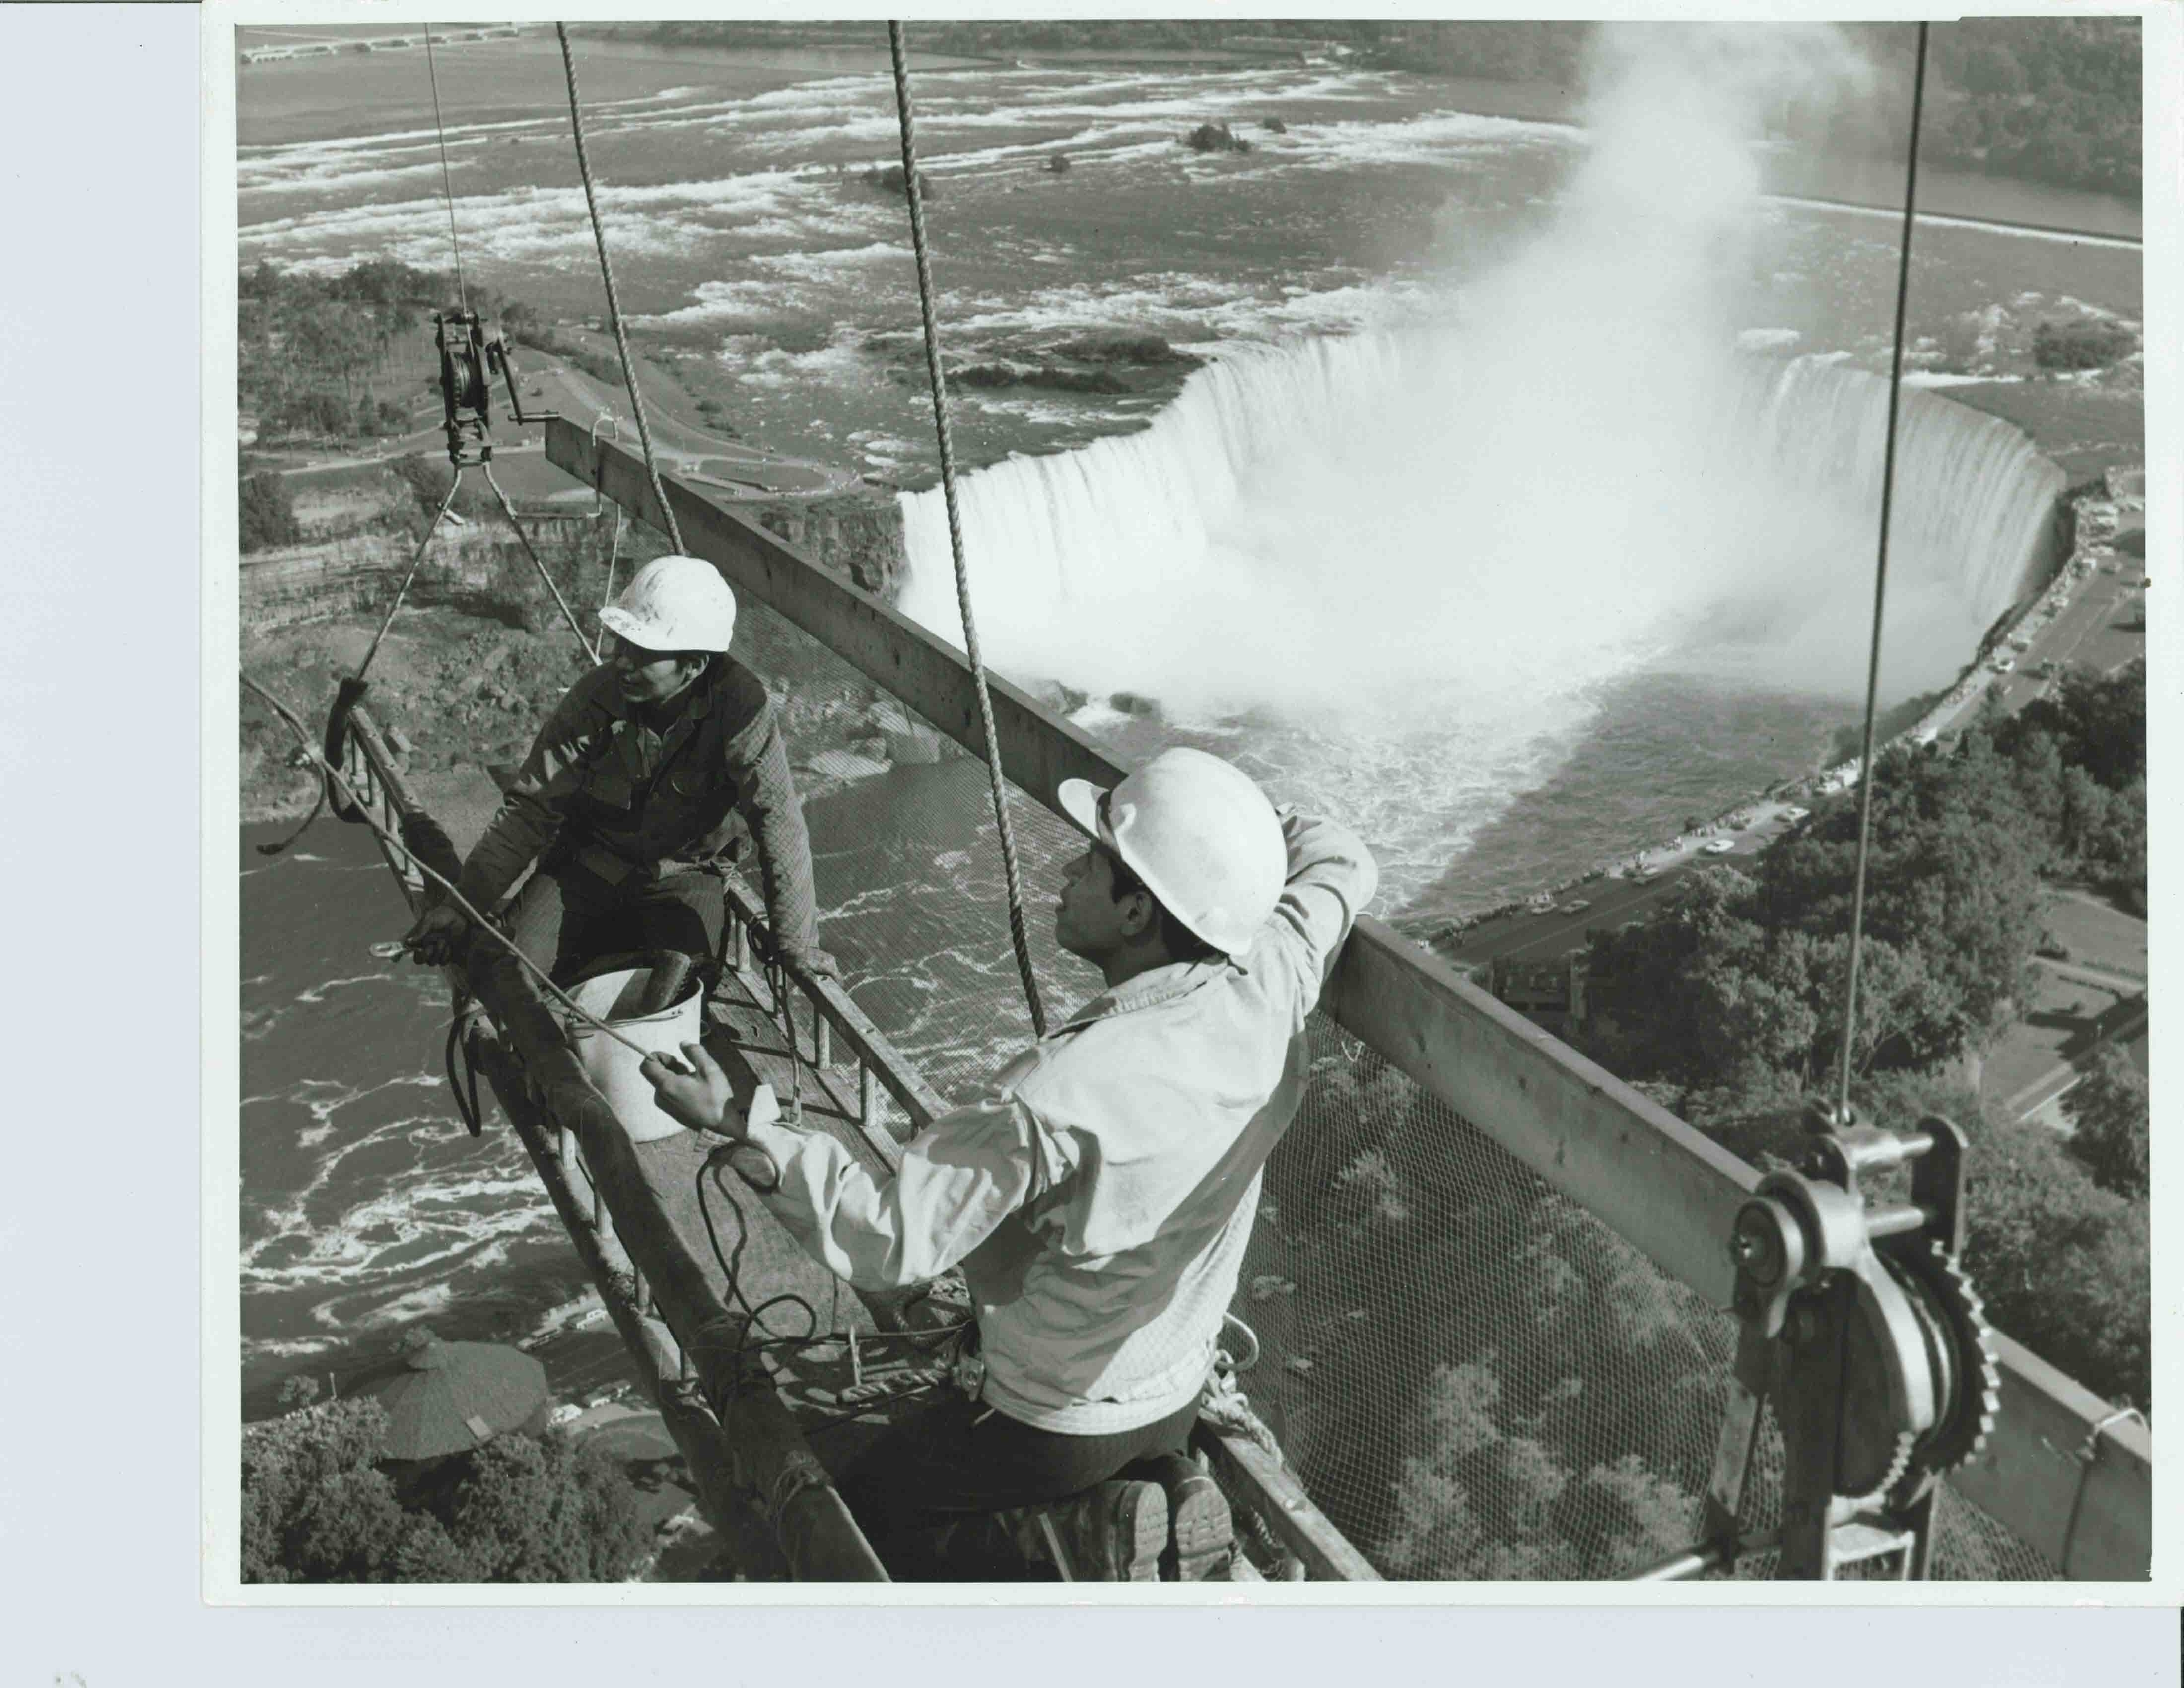 Construction Began for Skylon Tower